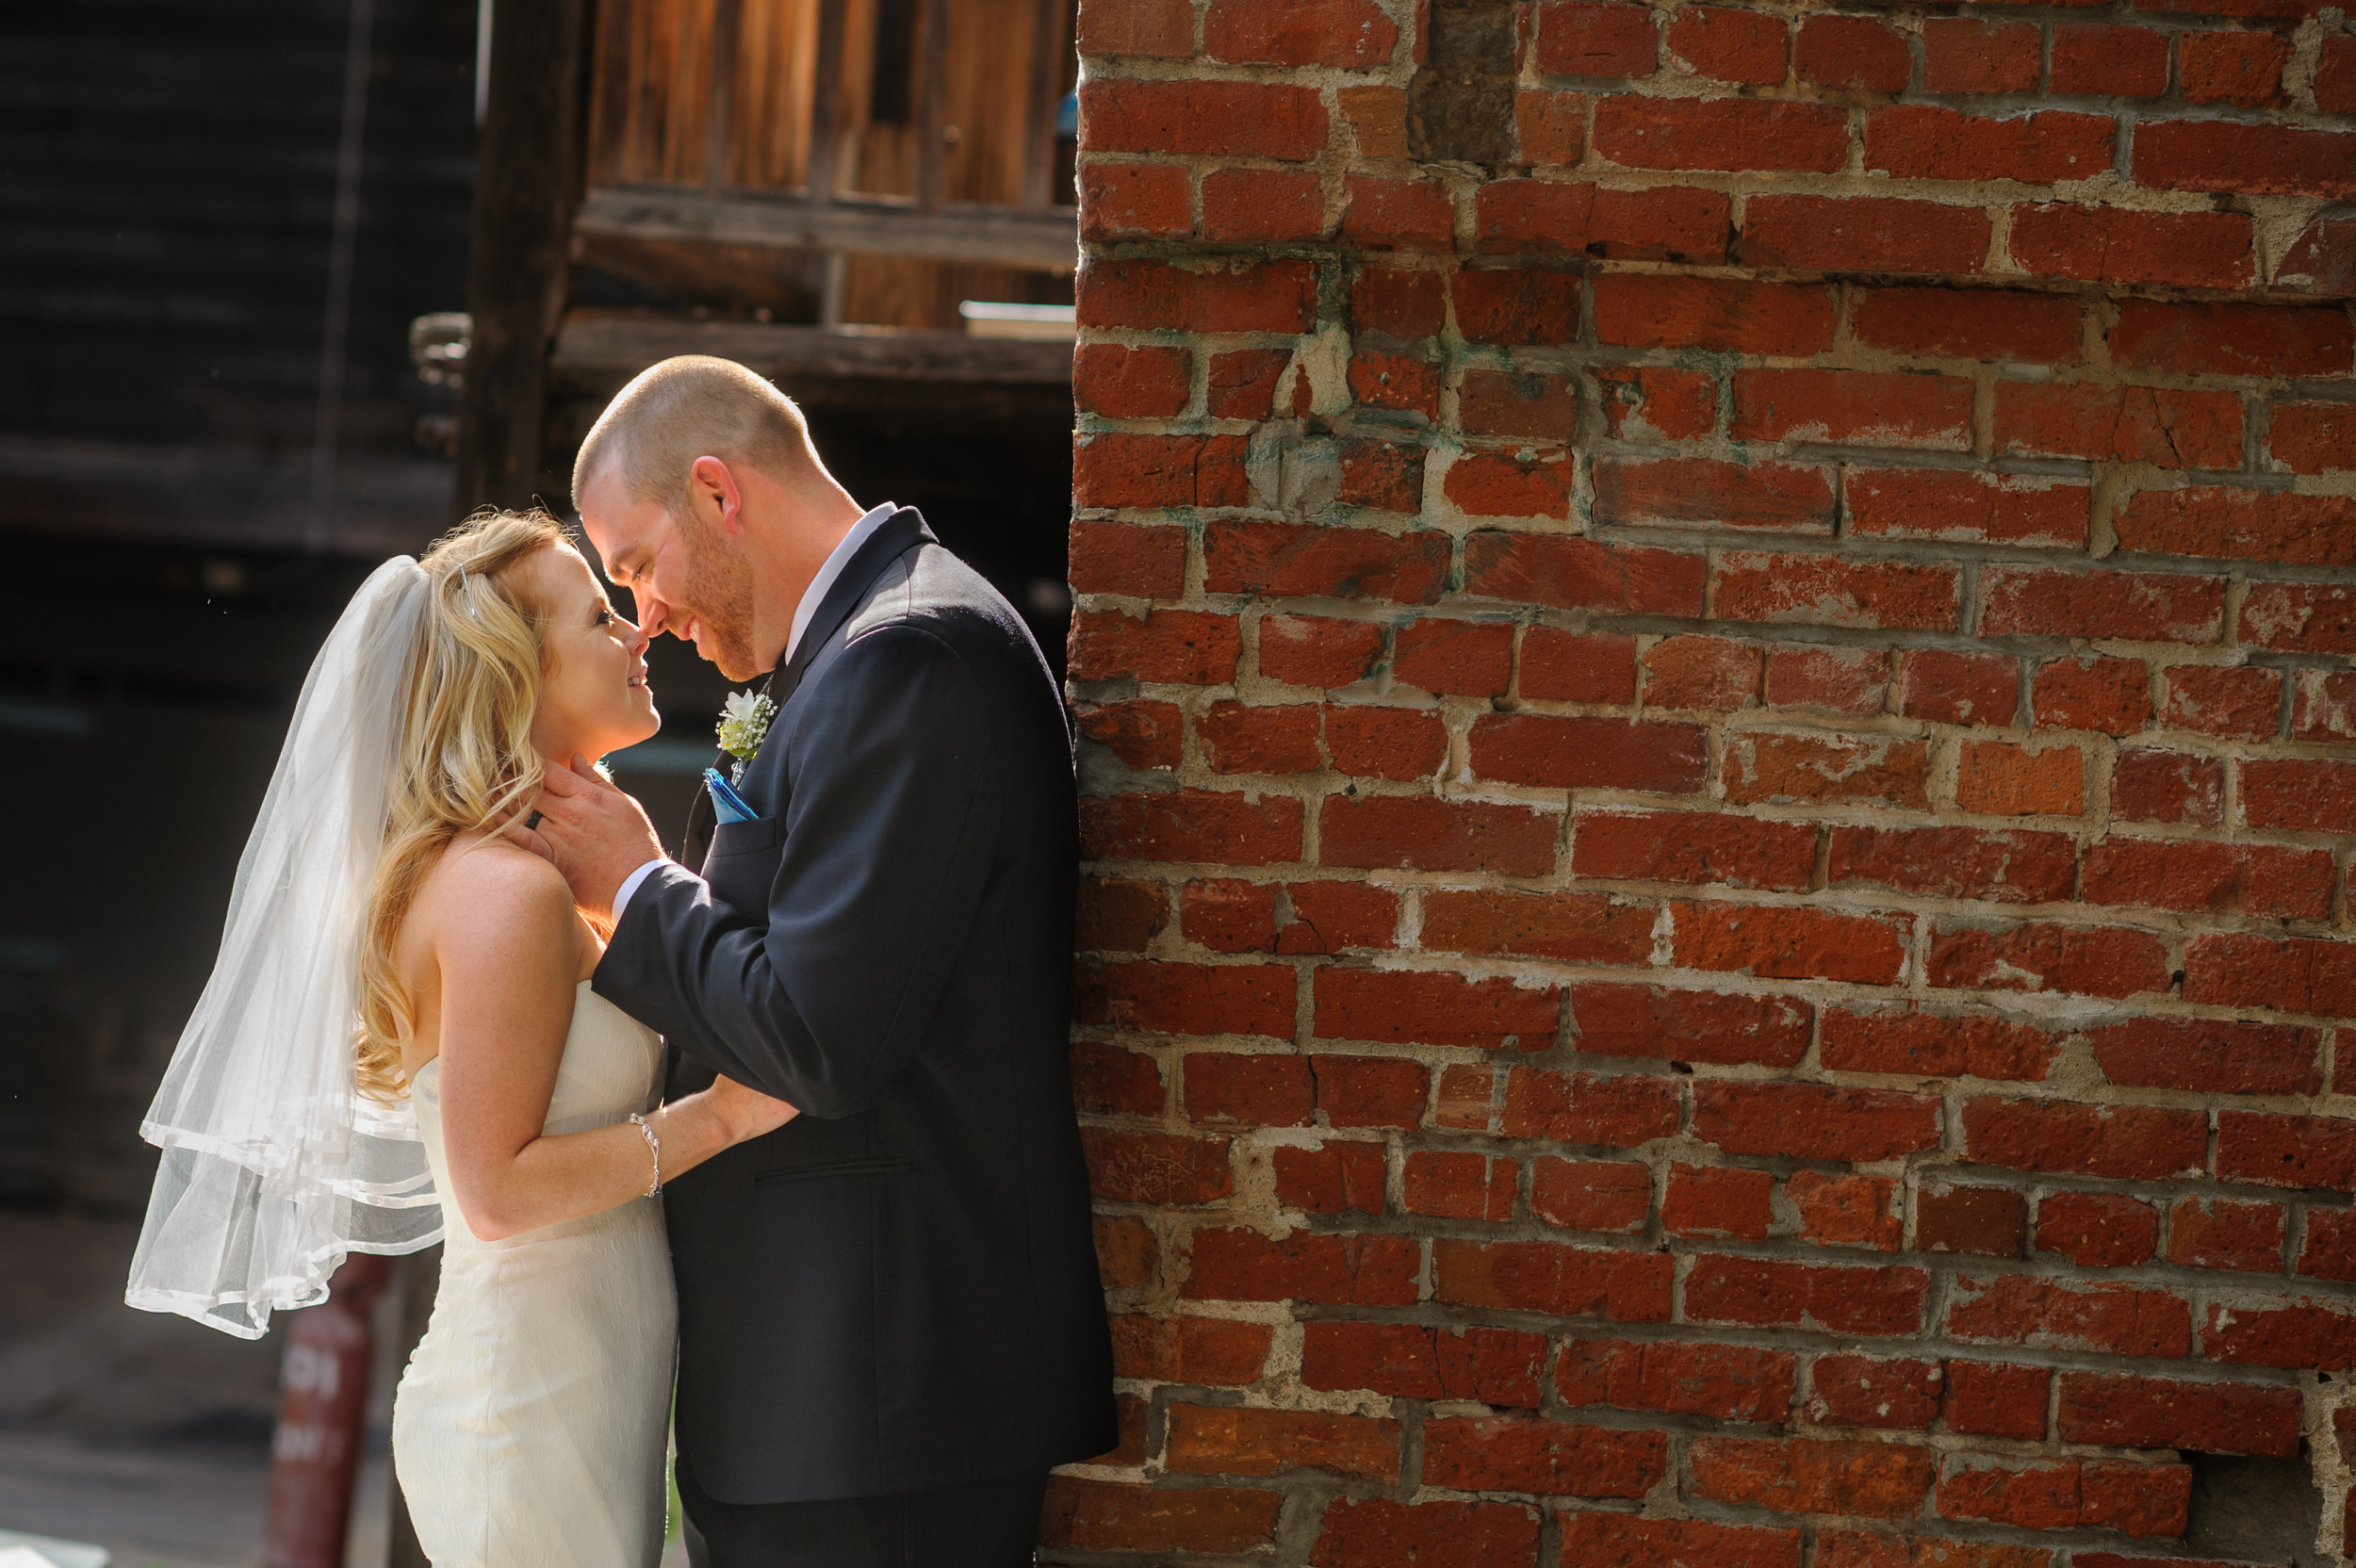 jenelle-brian-001-courtyard-d'oro-old-sacramento-wedding-photographer-katherine-nicole-photography031.JPG